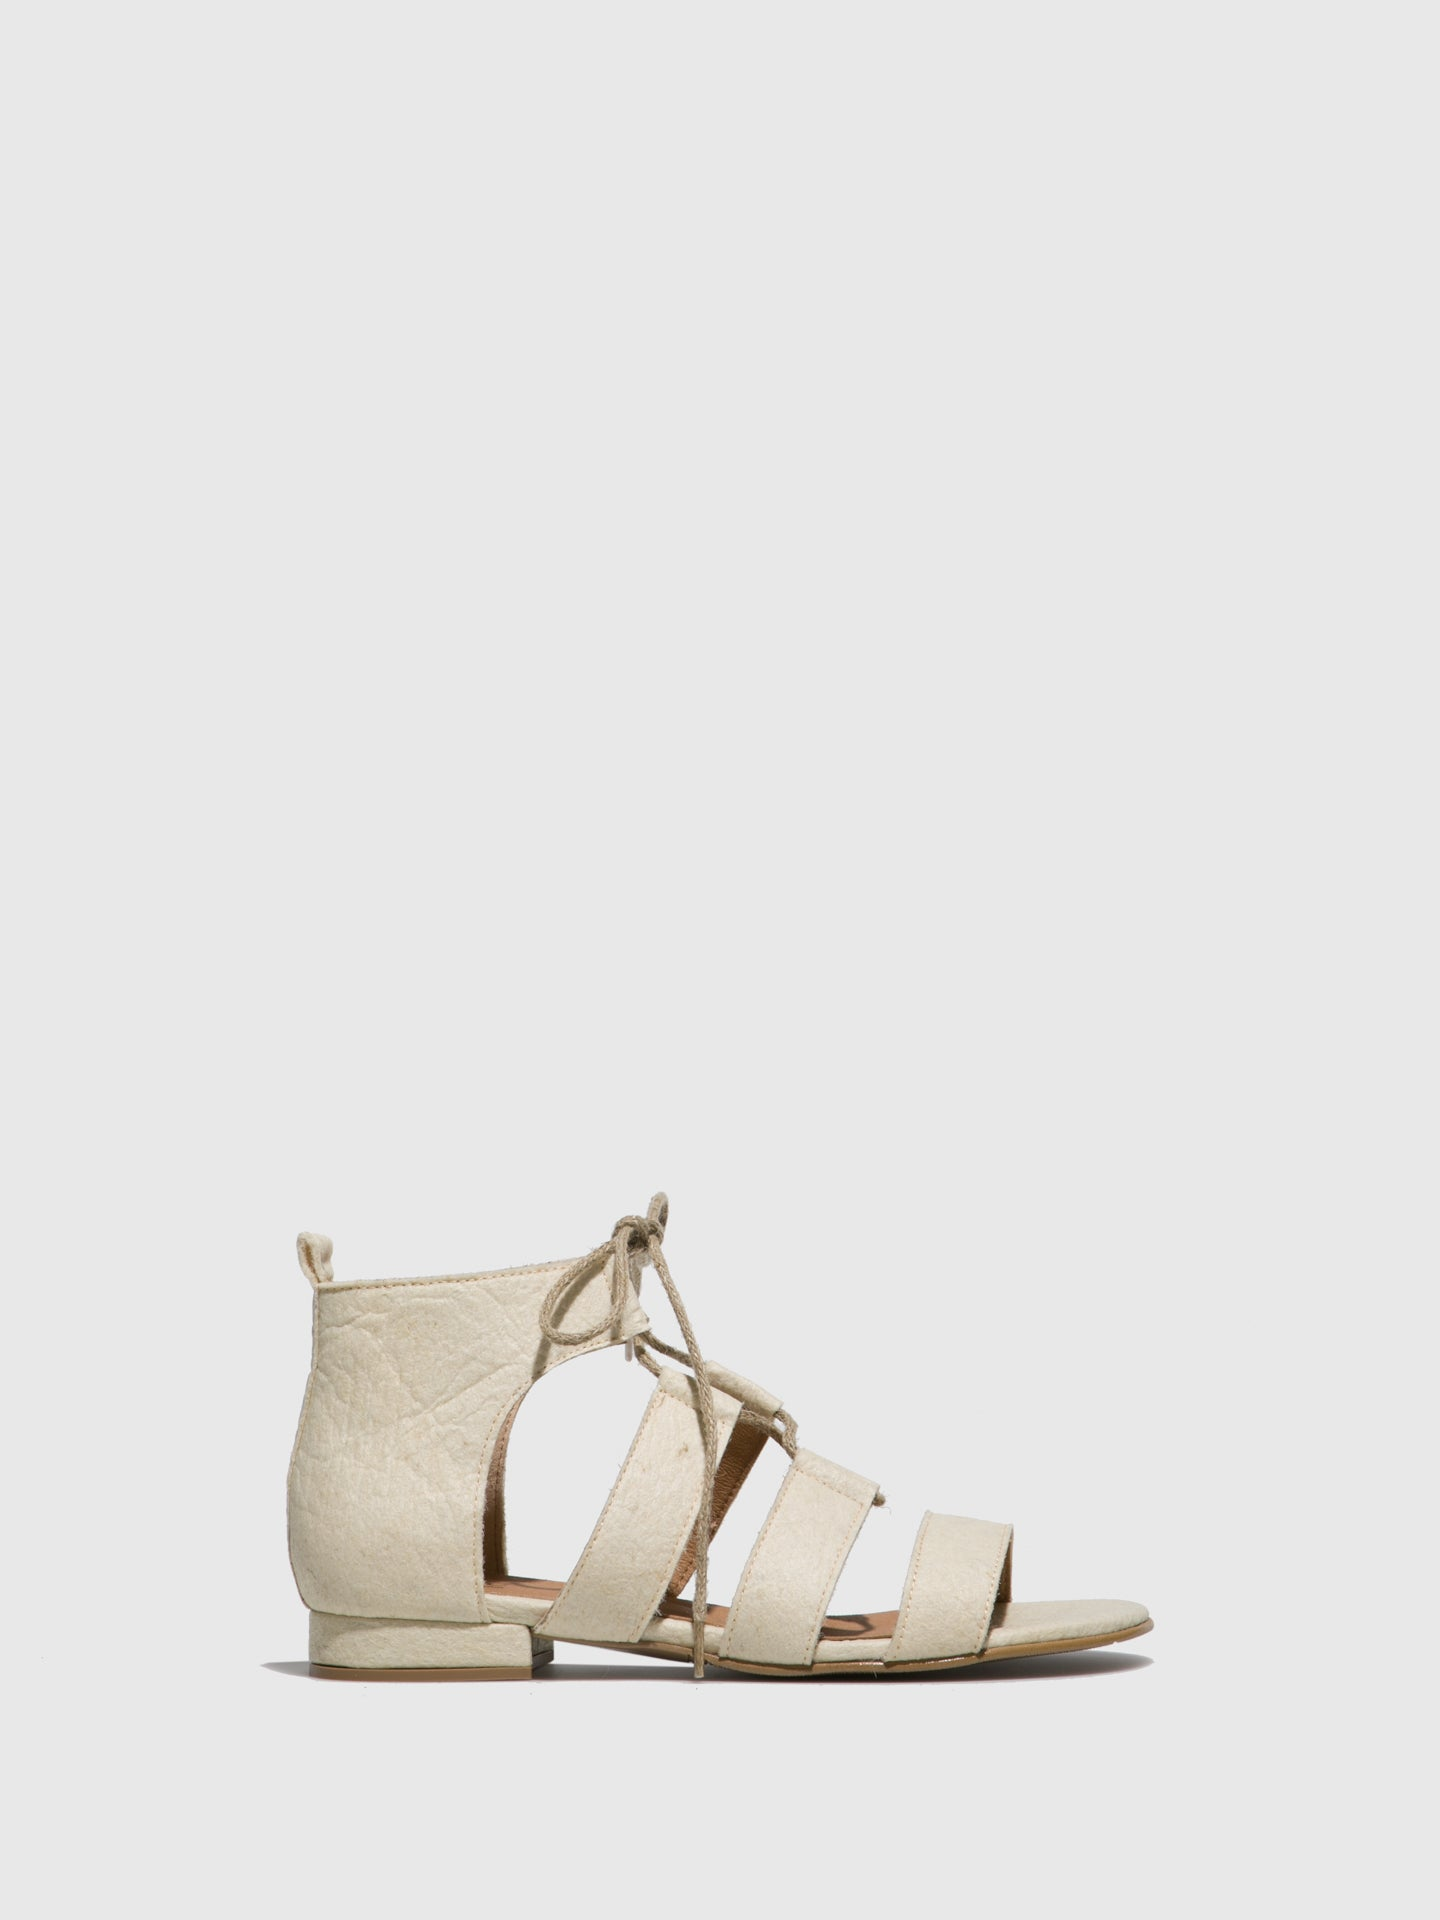 NAE Vegan Shoes White Strappy Sandals